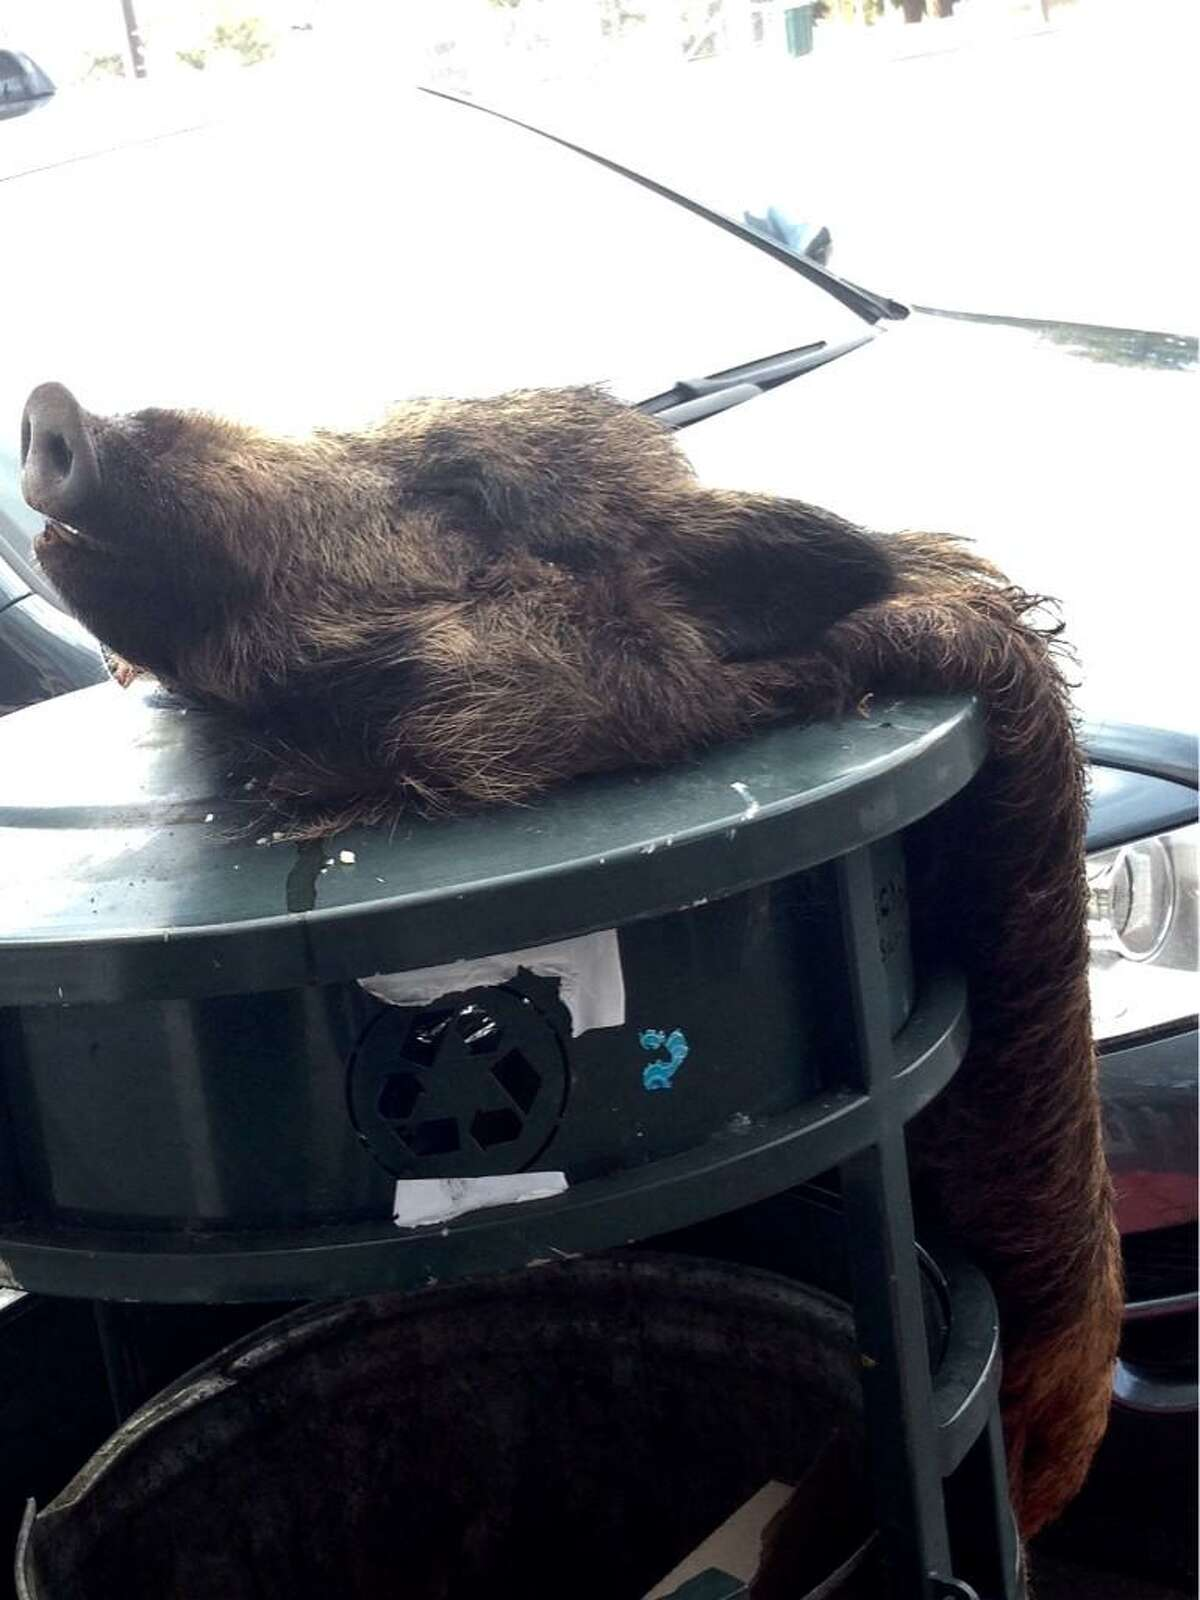 A skinned boar was found in Berkeley on the morning of Monday, Jan. 19, 2014, near a vegetarian restaurant on Adeline Street. Another such discovery was made the same morning on Shattuck Avenue near Herbivore, a downtown vegan restaurant.